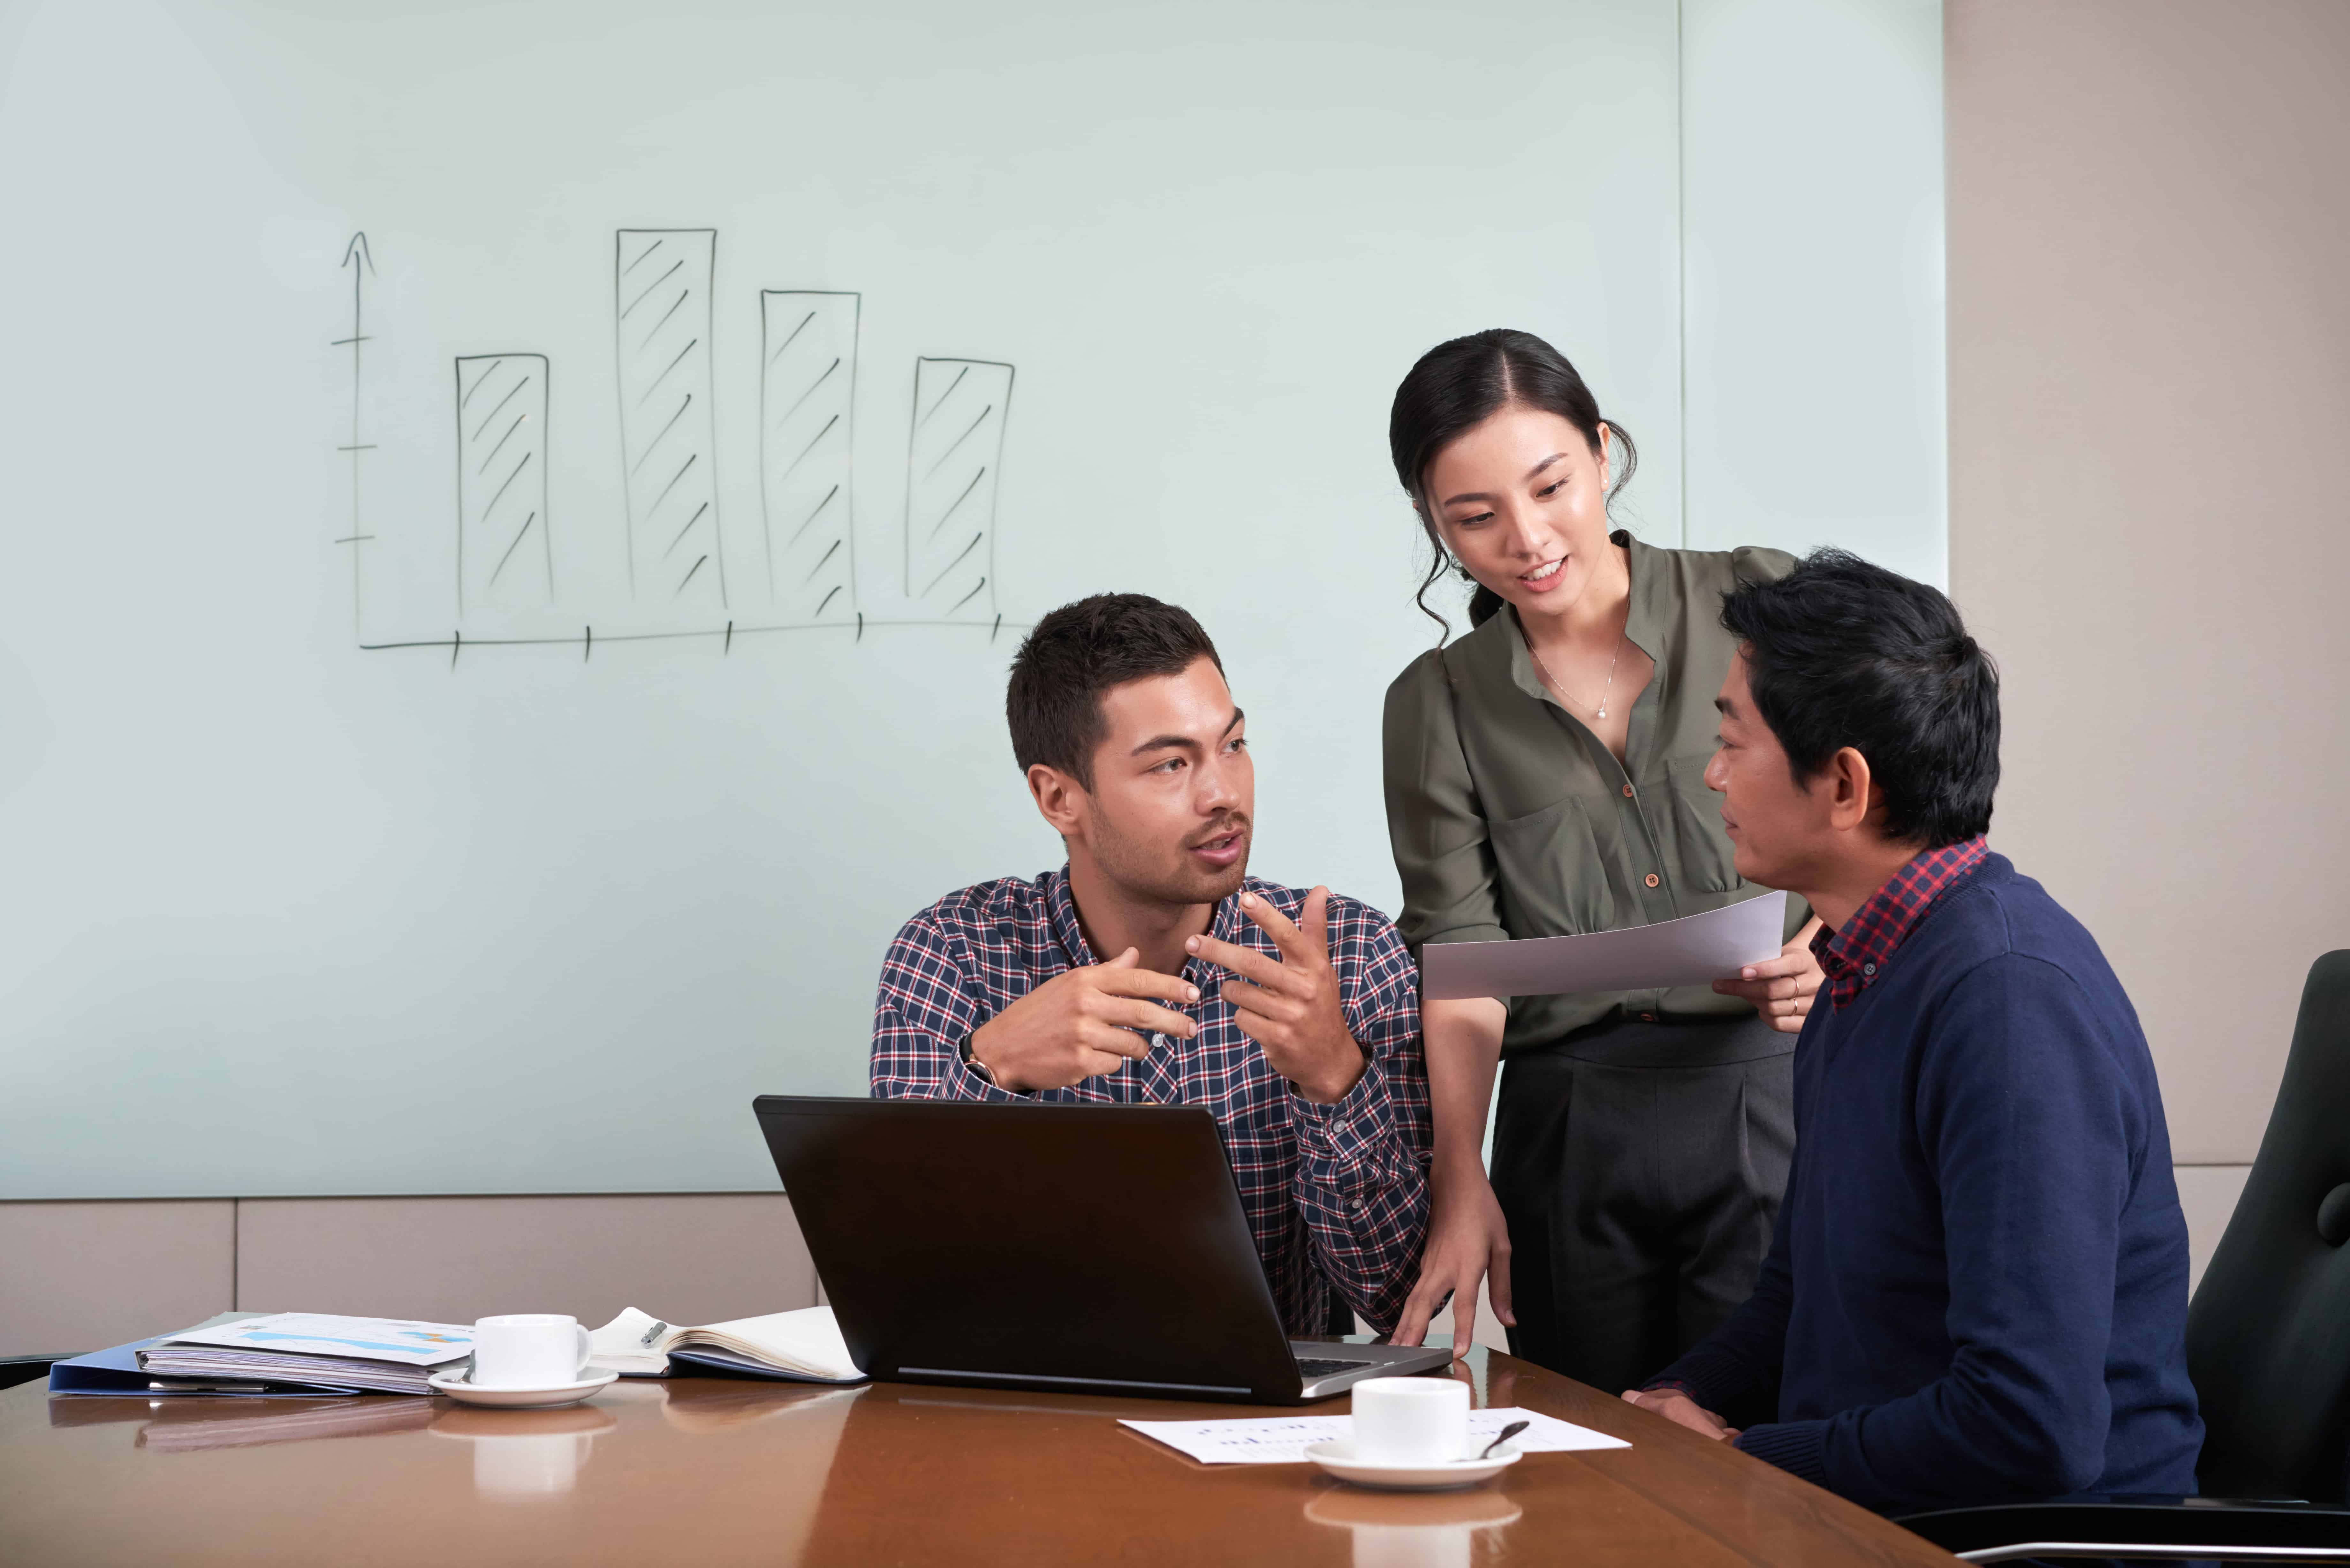 How to Build an Analytics Career if You are a Non-IT Professional - Analytics Insight